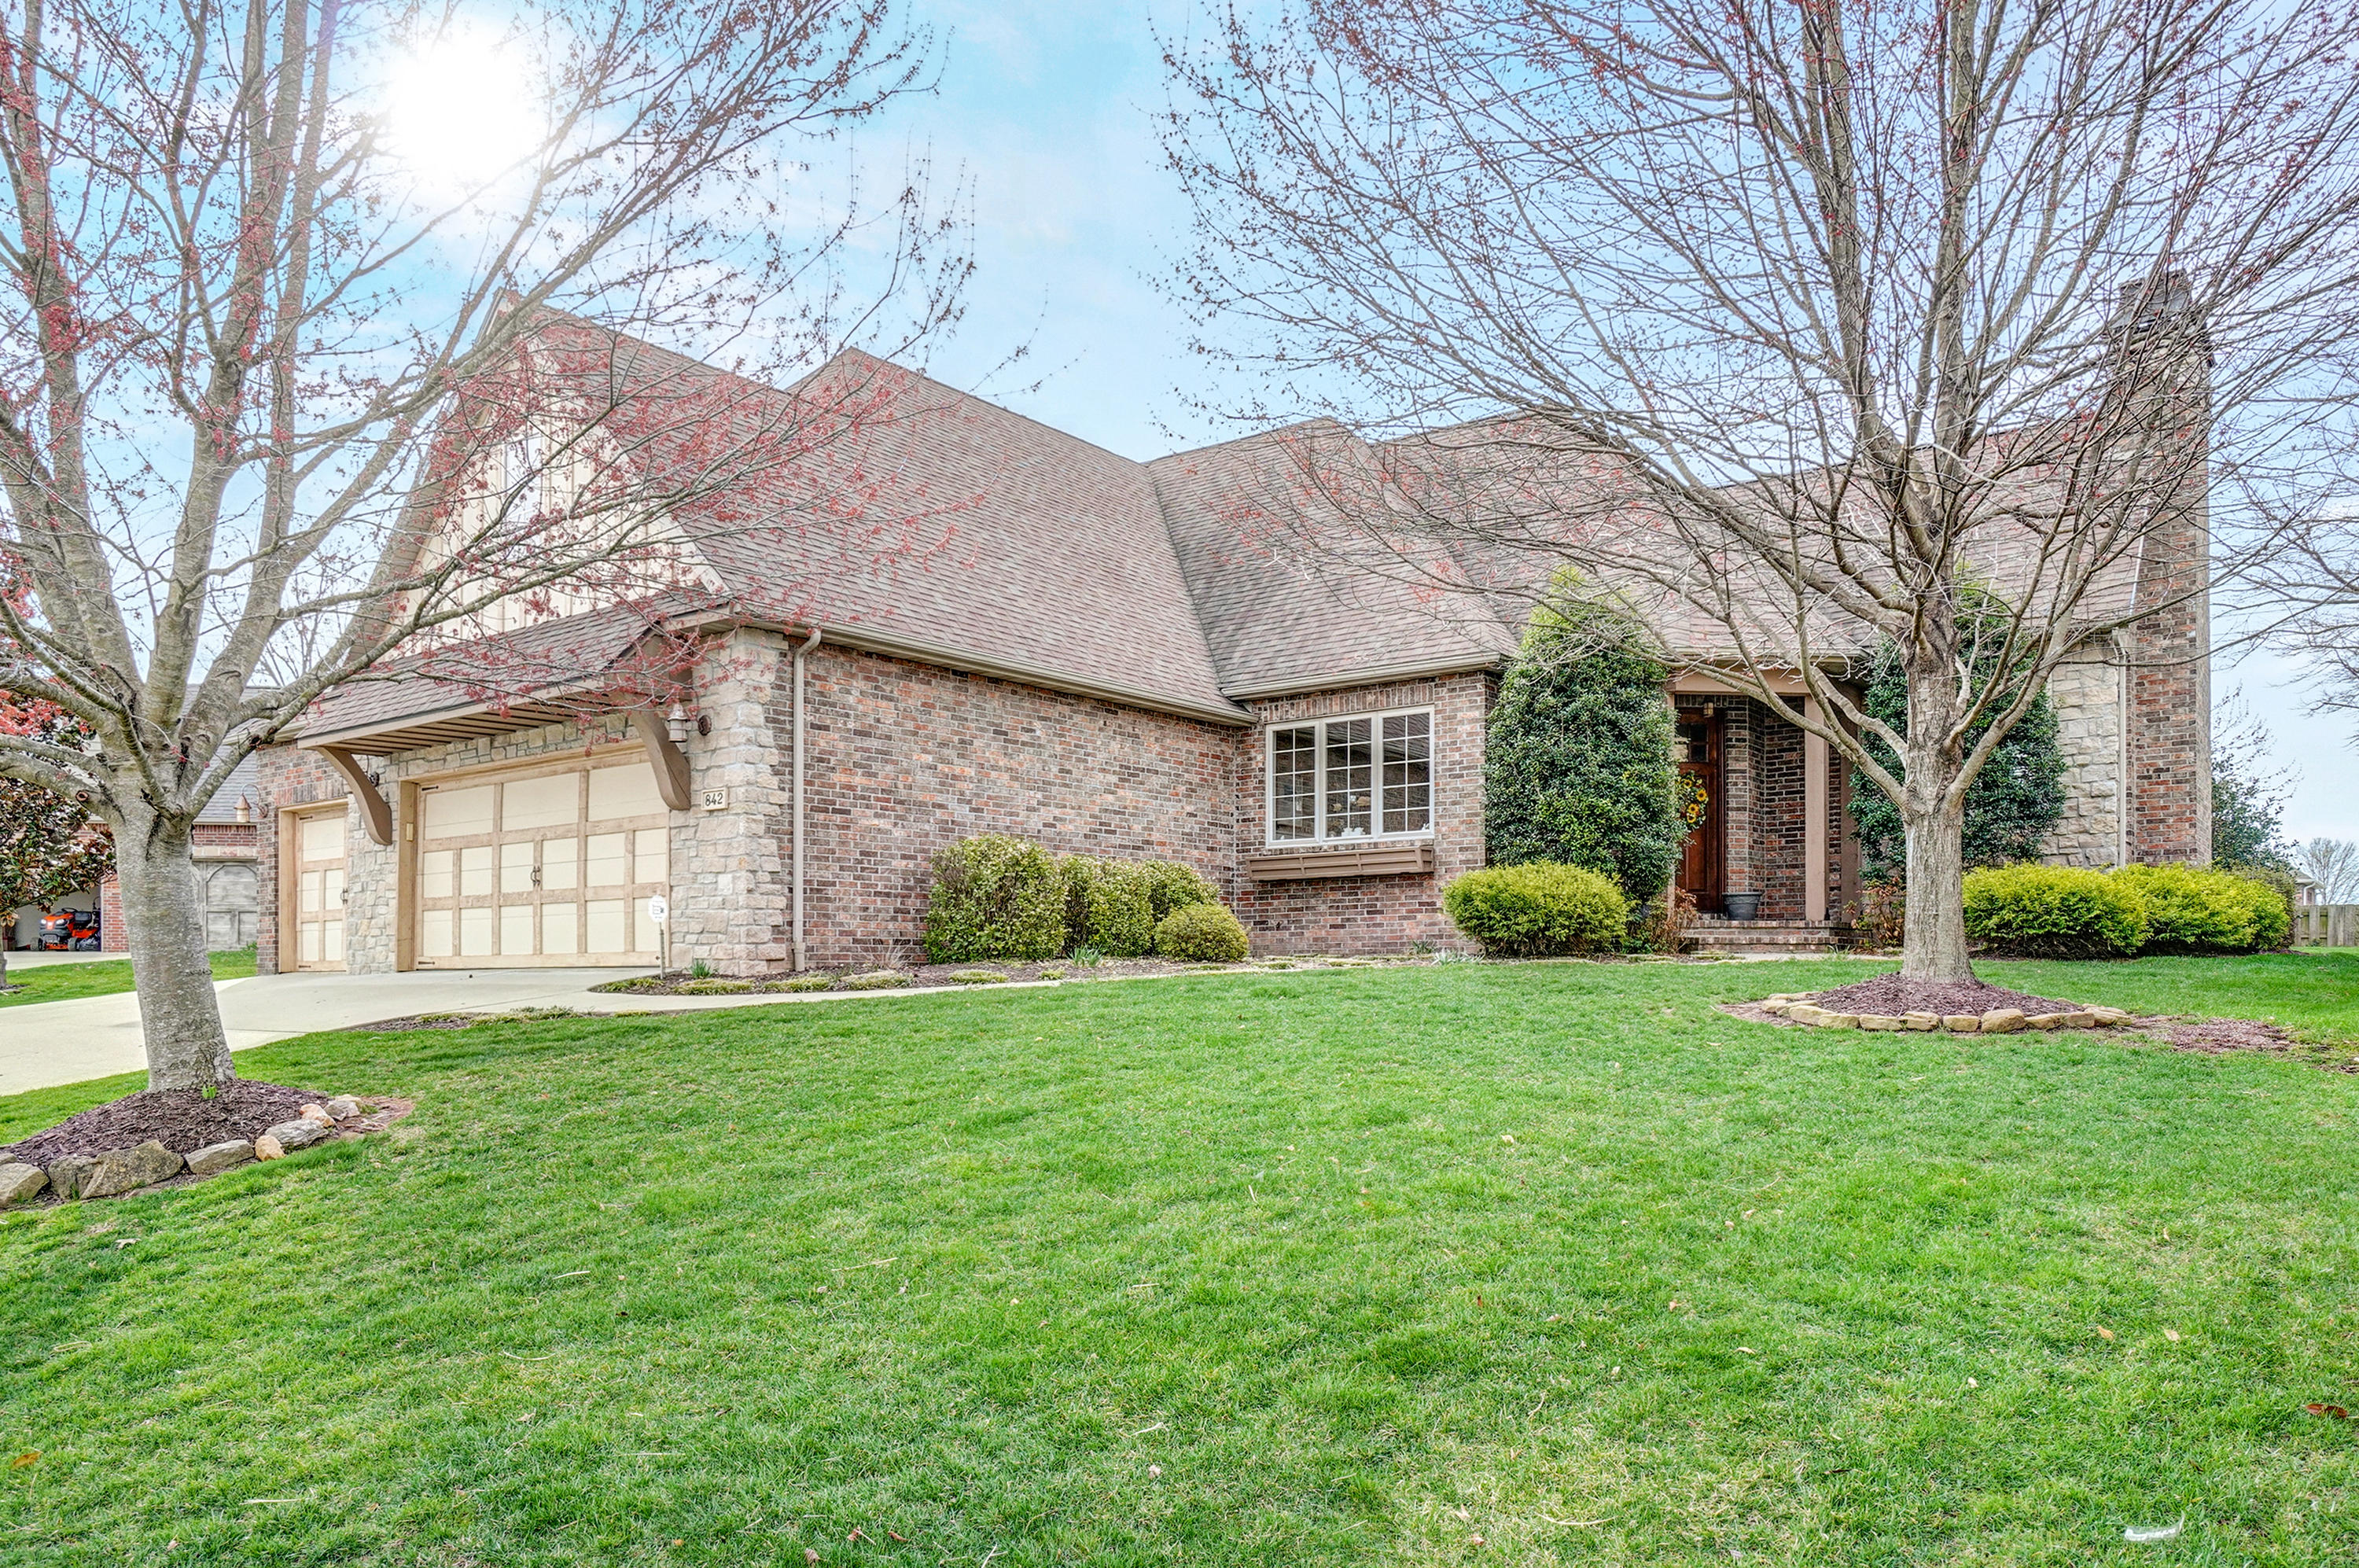 842 East Rush Court Nixa, MO 65714